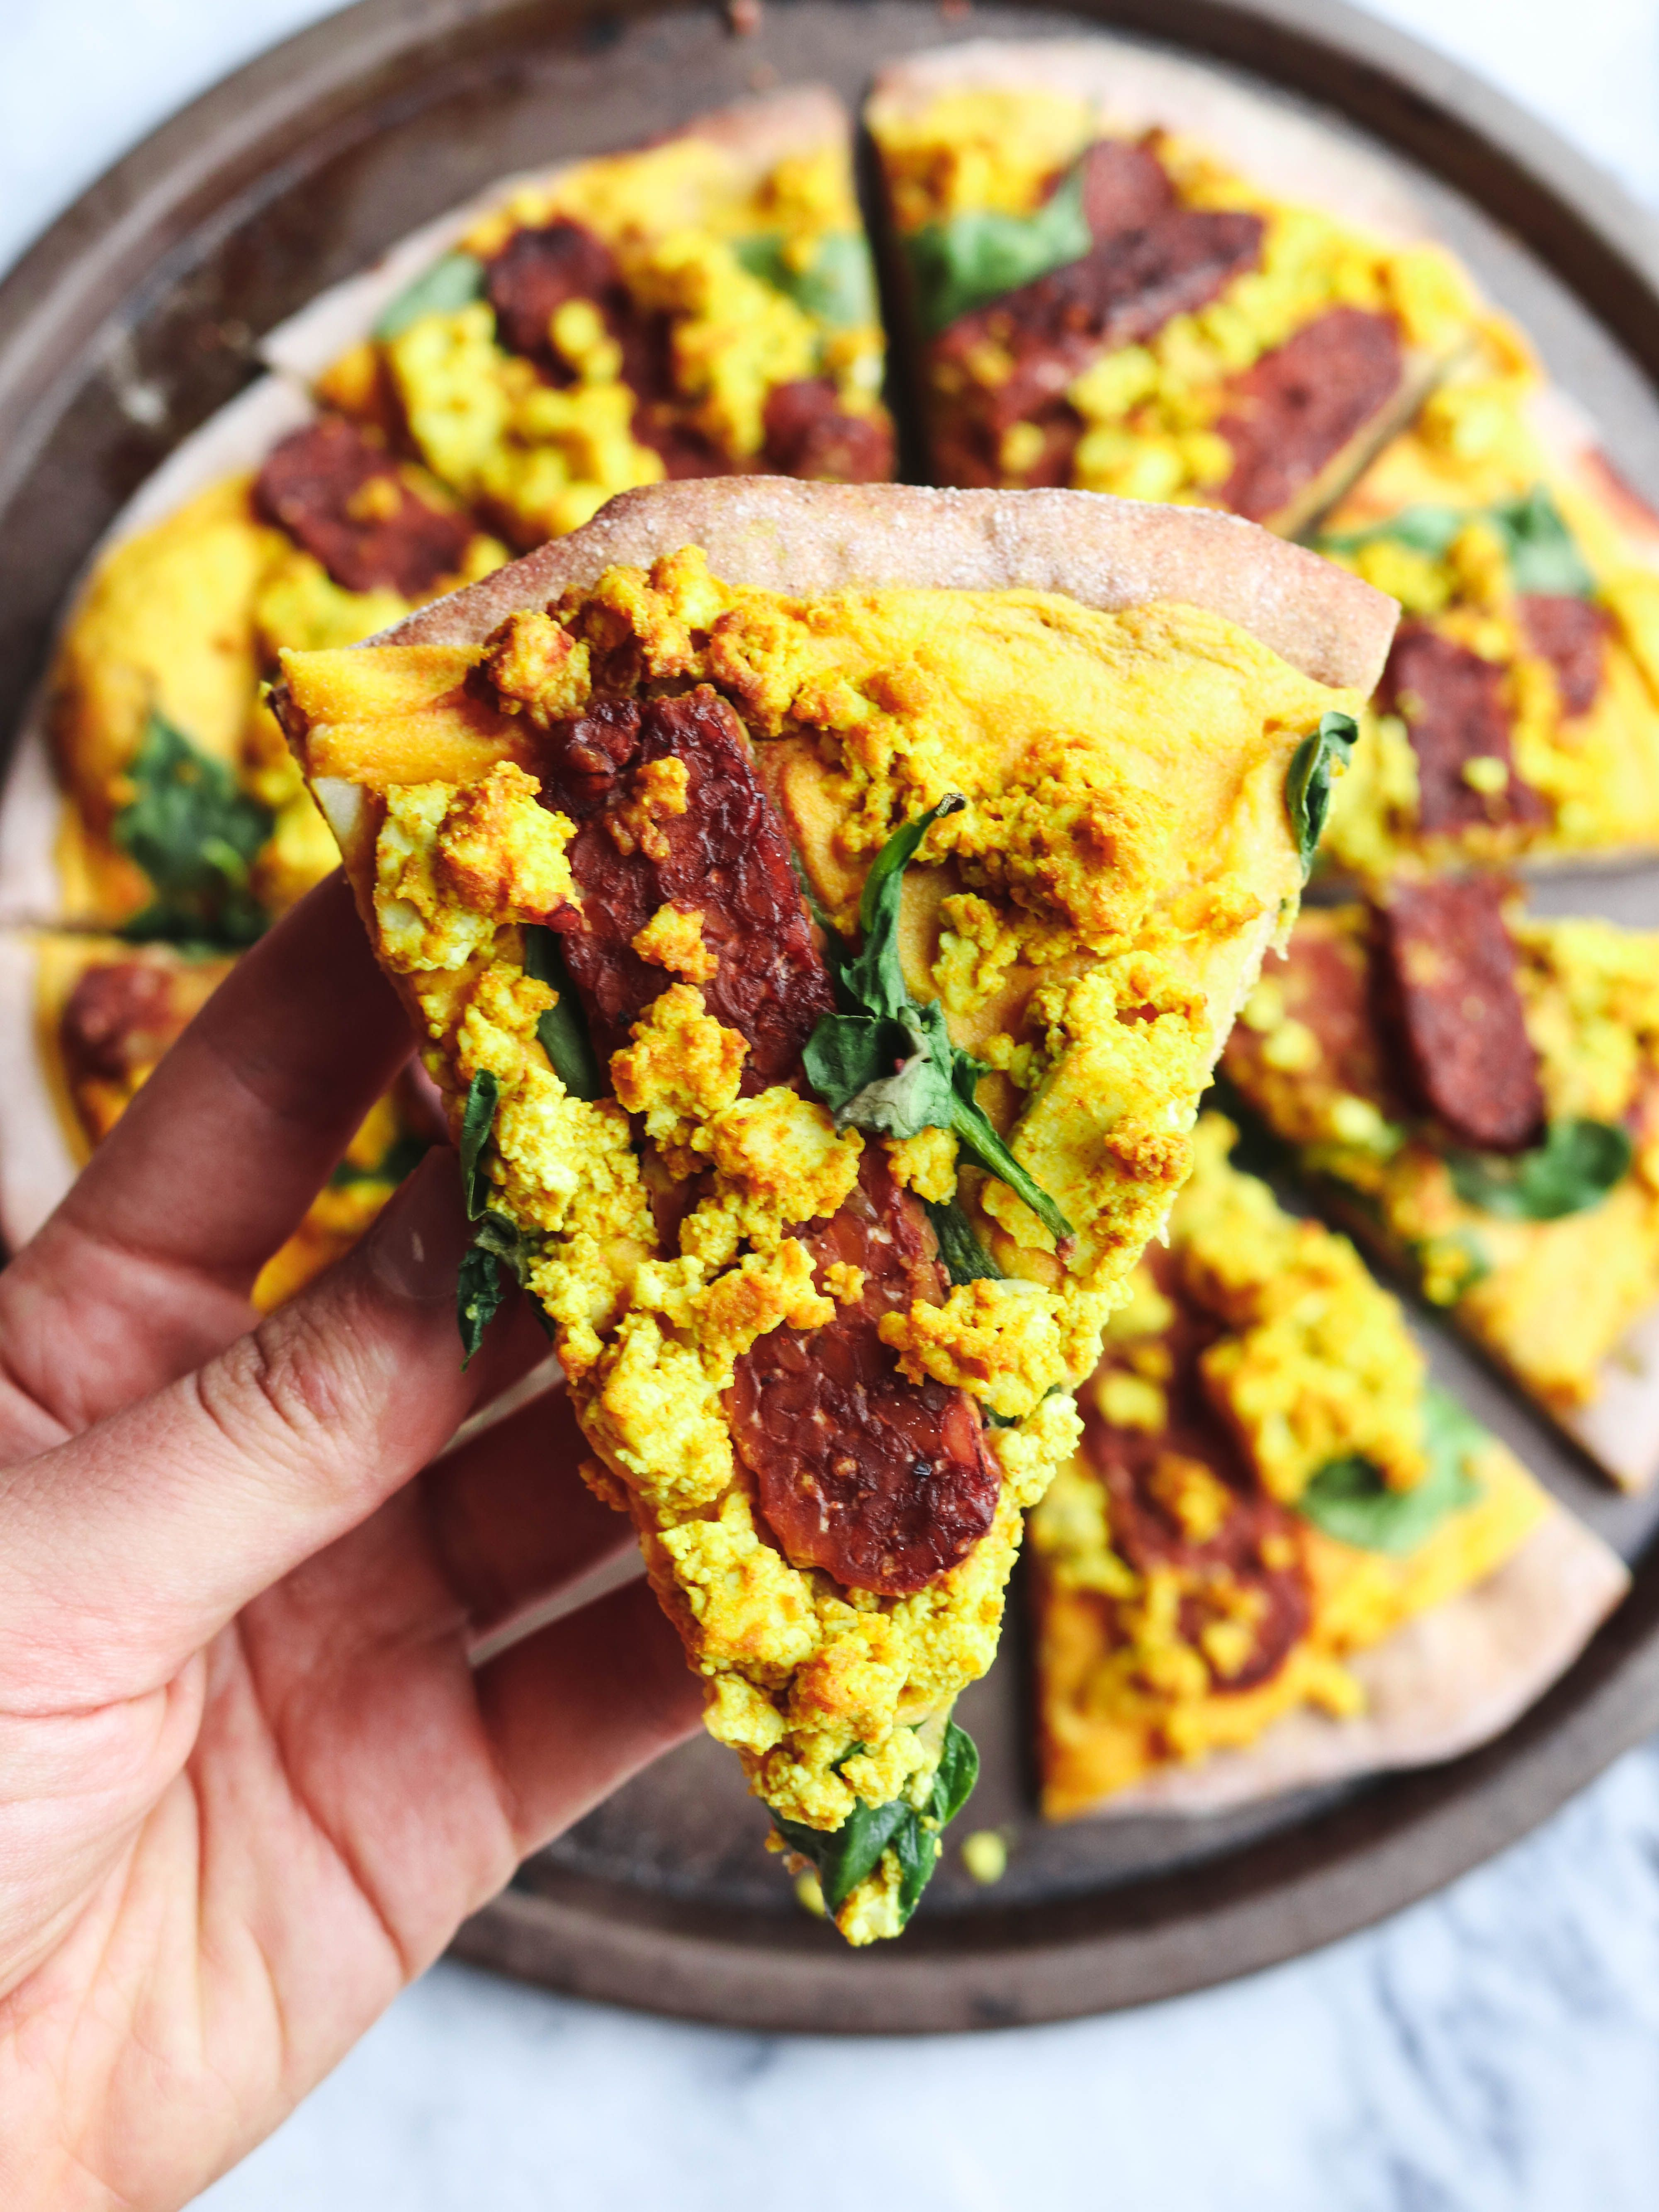 Cheezy Vegan Breakfast Pizza With Smoky Tempeh Bacon From My Bowl Recipe Vegan Breakfast Pizza Breakfast Pizza Tempeh Bacon